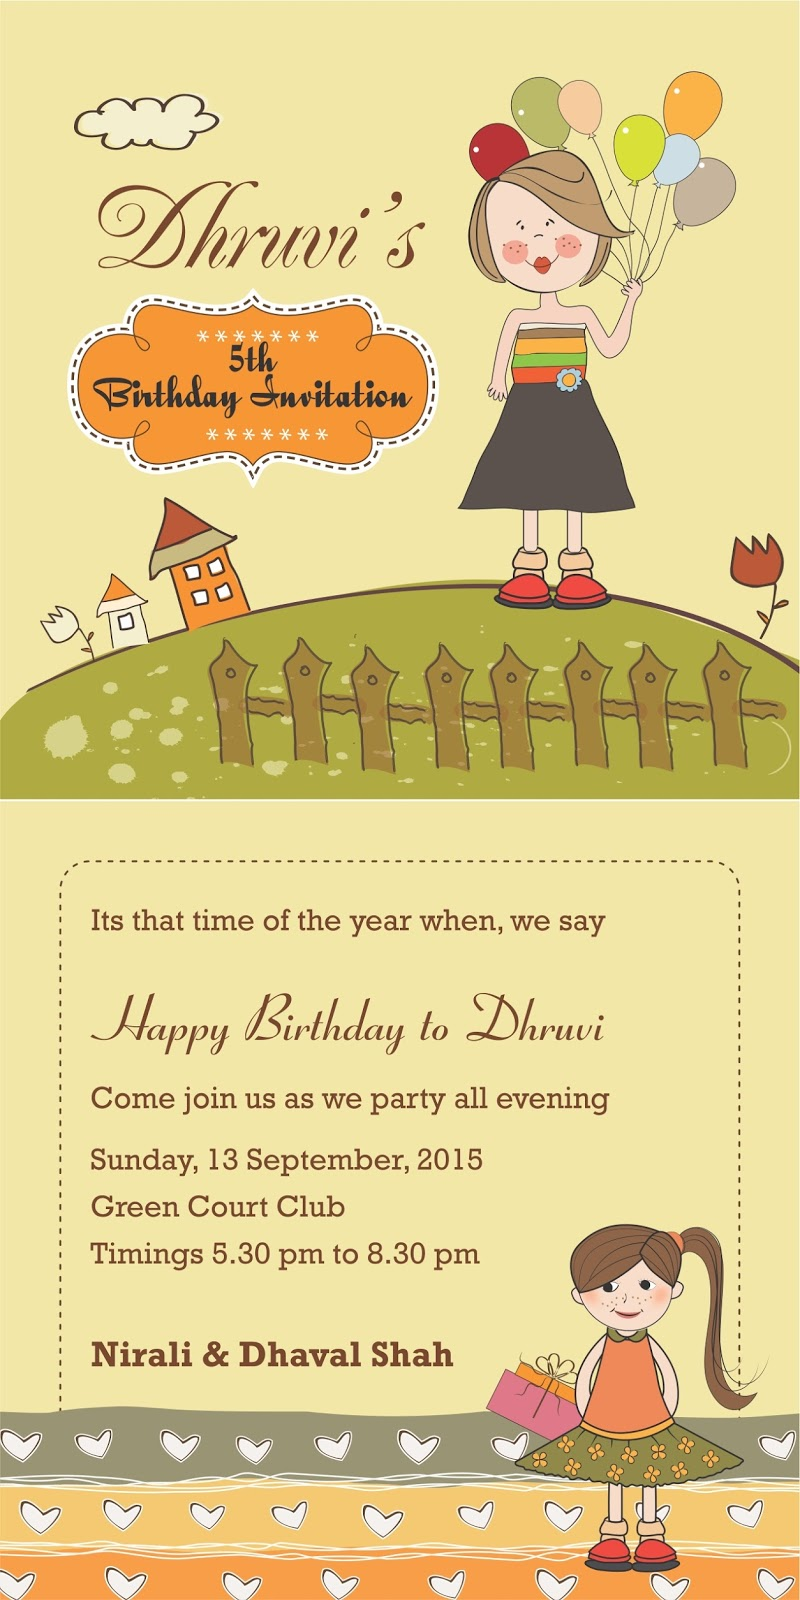 Whatsapp message for birthday invitation stopboris Image collections